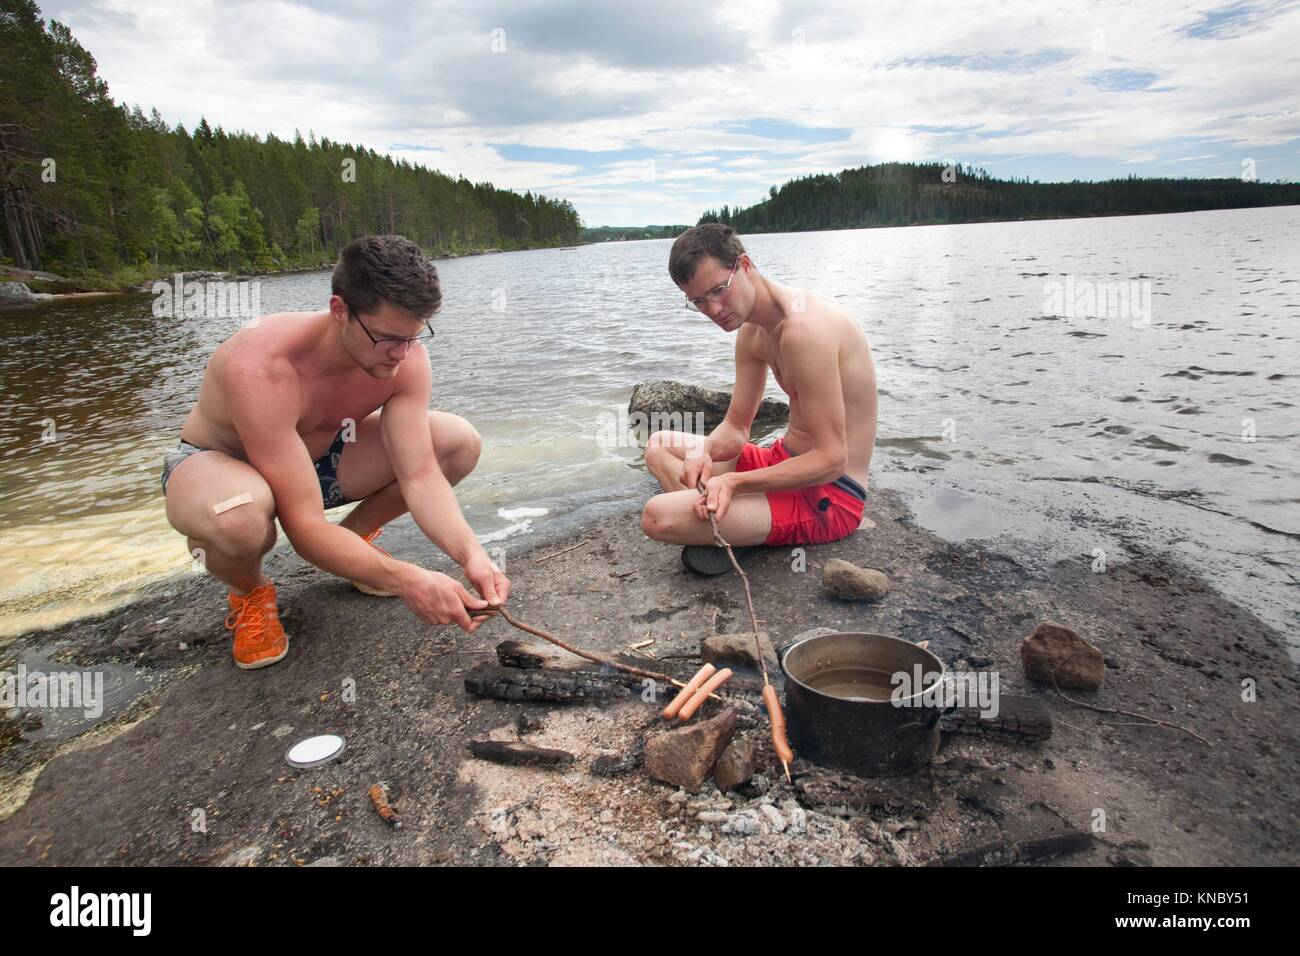 Brothers grilling hot dogs by the water, countryside of northern Sweden. - Stock Image